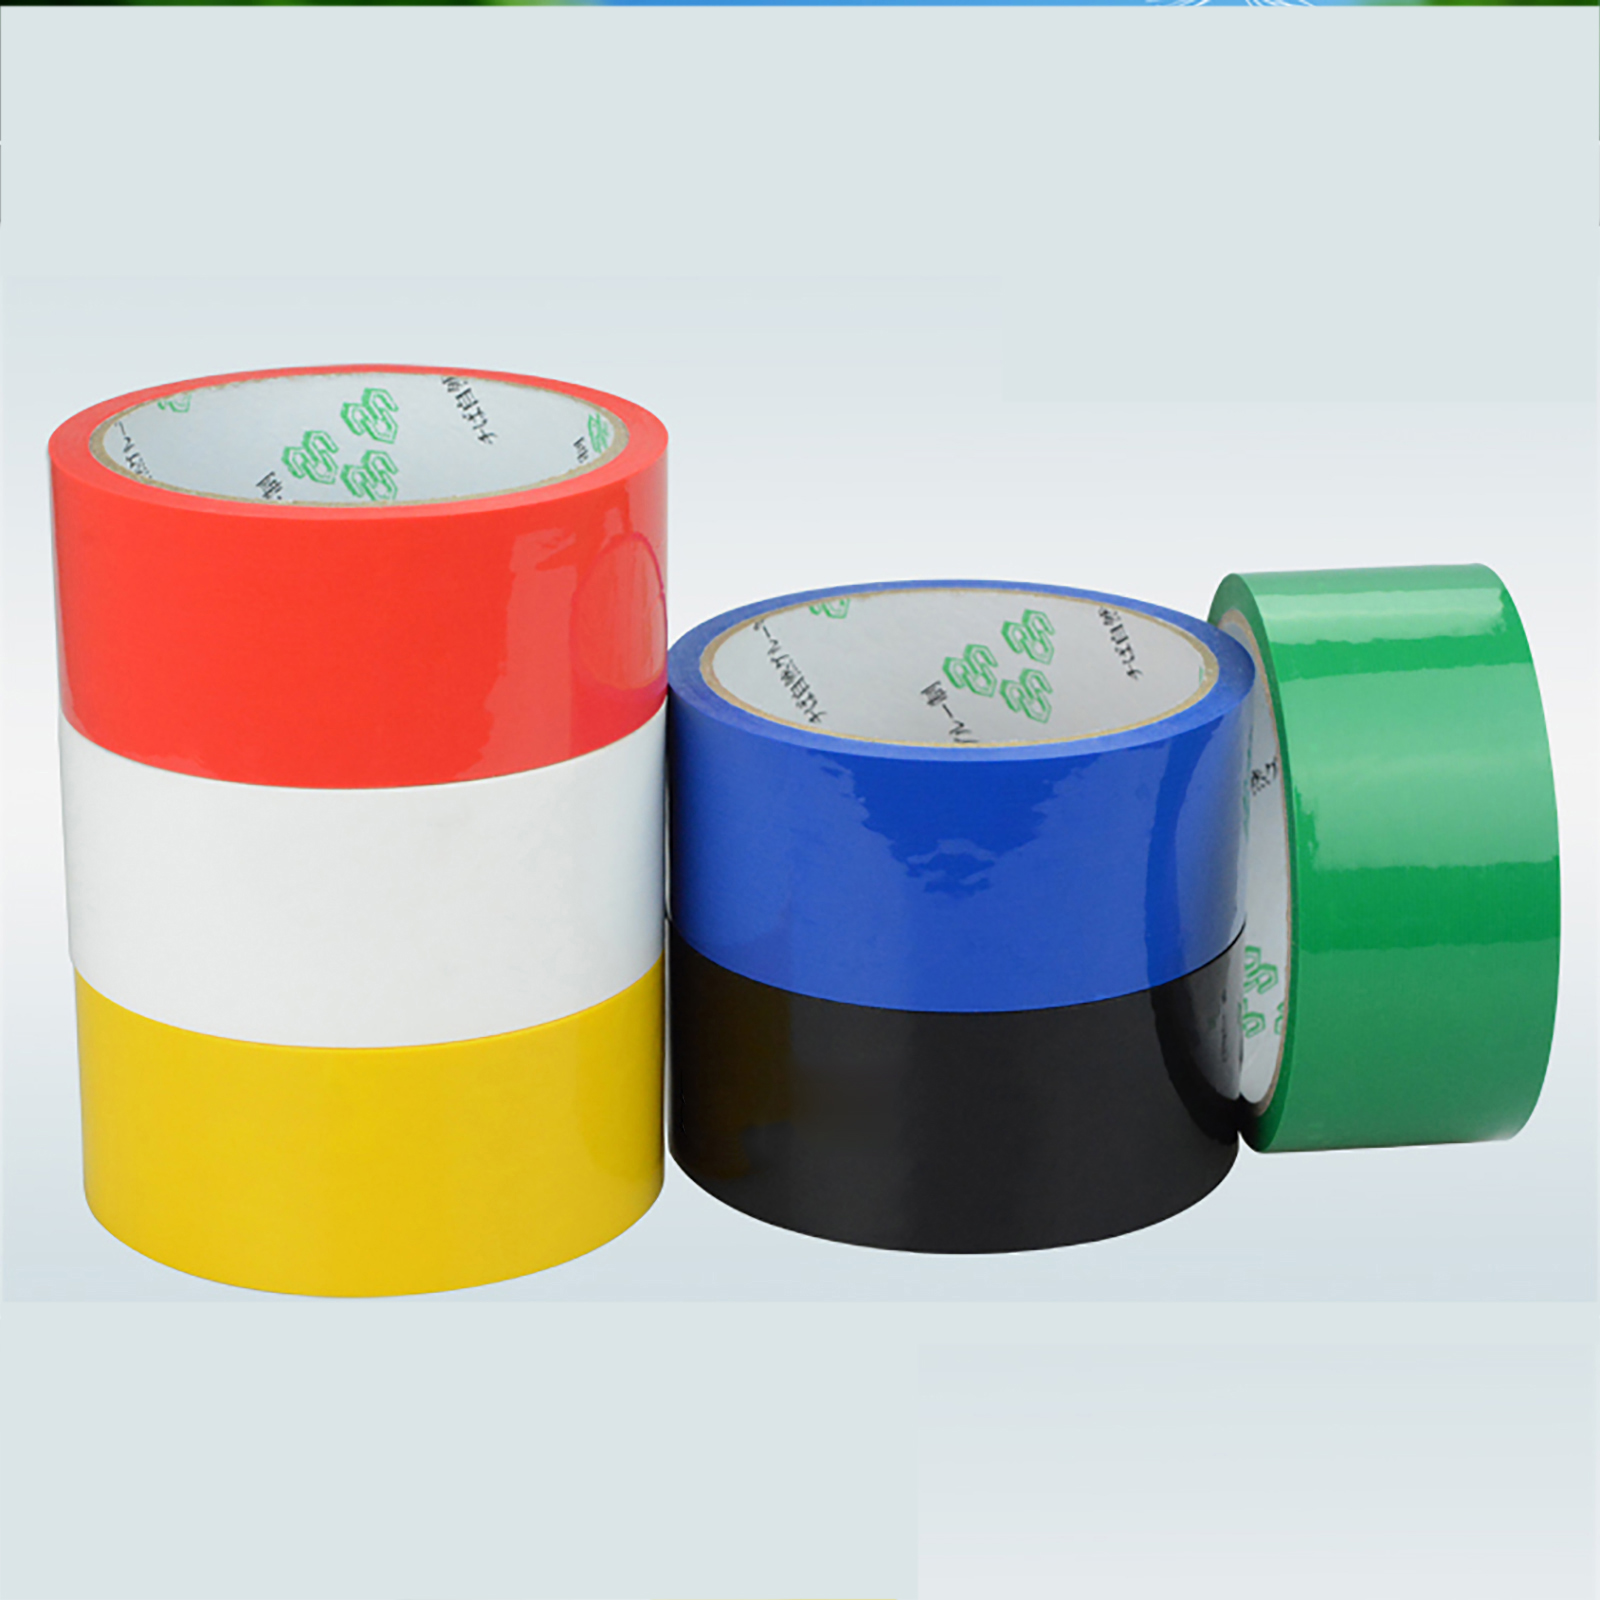 40M/Roll Sealing Color Tape Packaging Adhesive Tape Width 15-60mm Thick 0.05mm Black Red Yellow Blue Green White